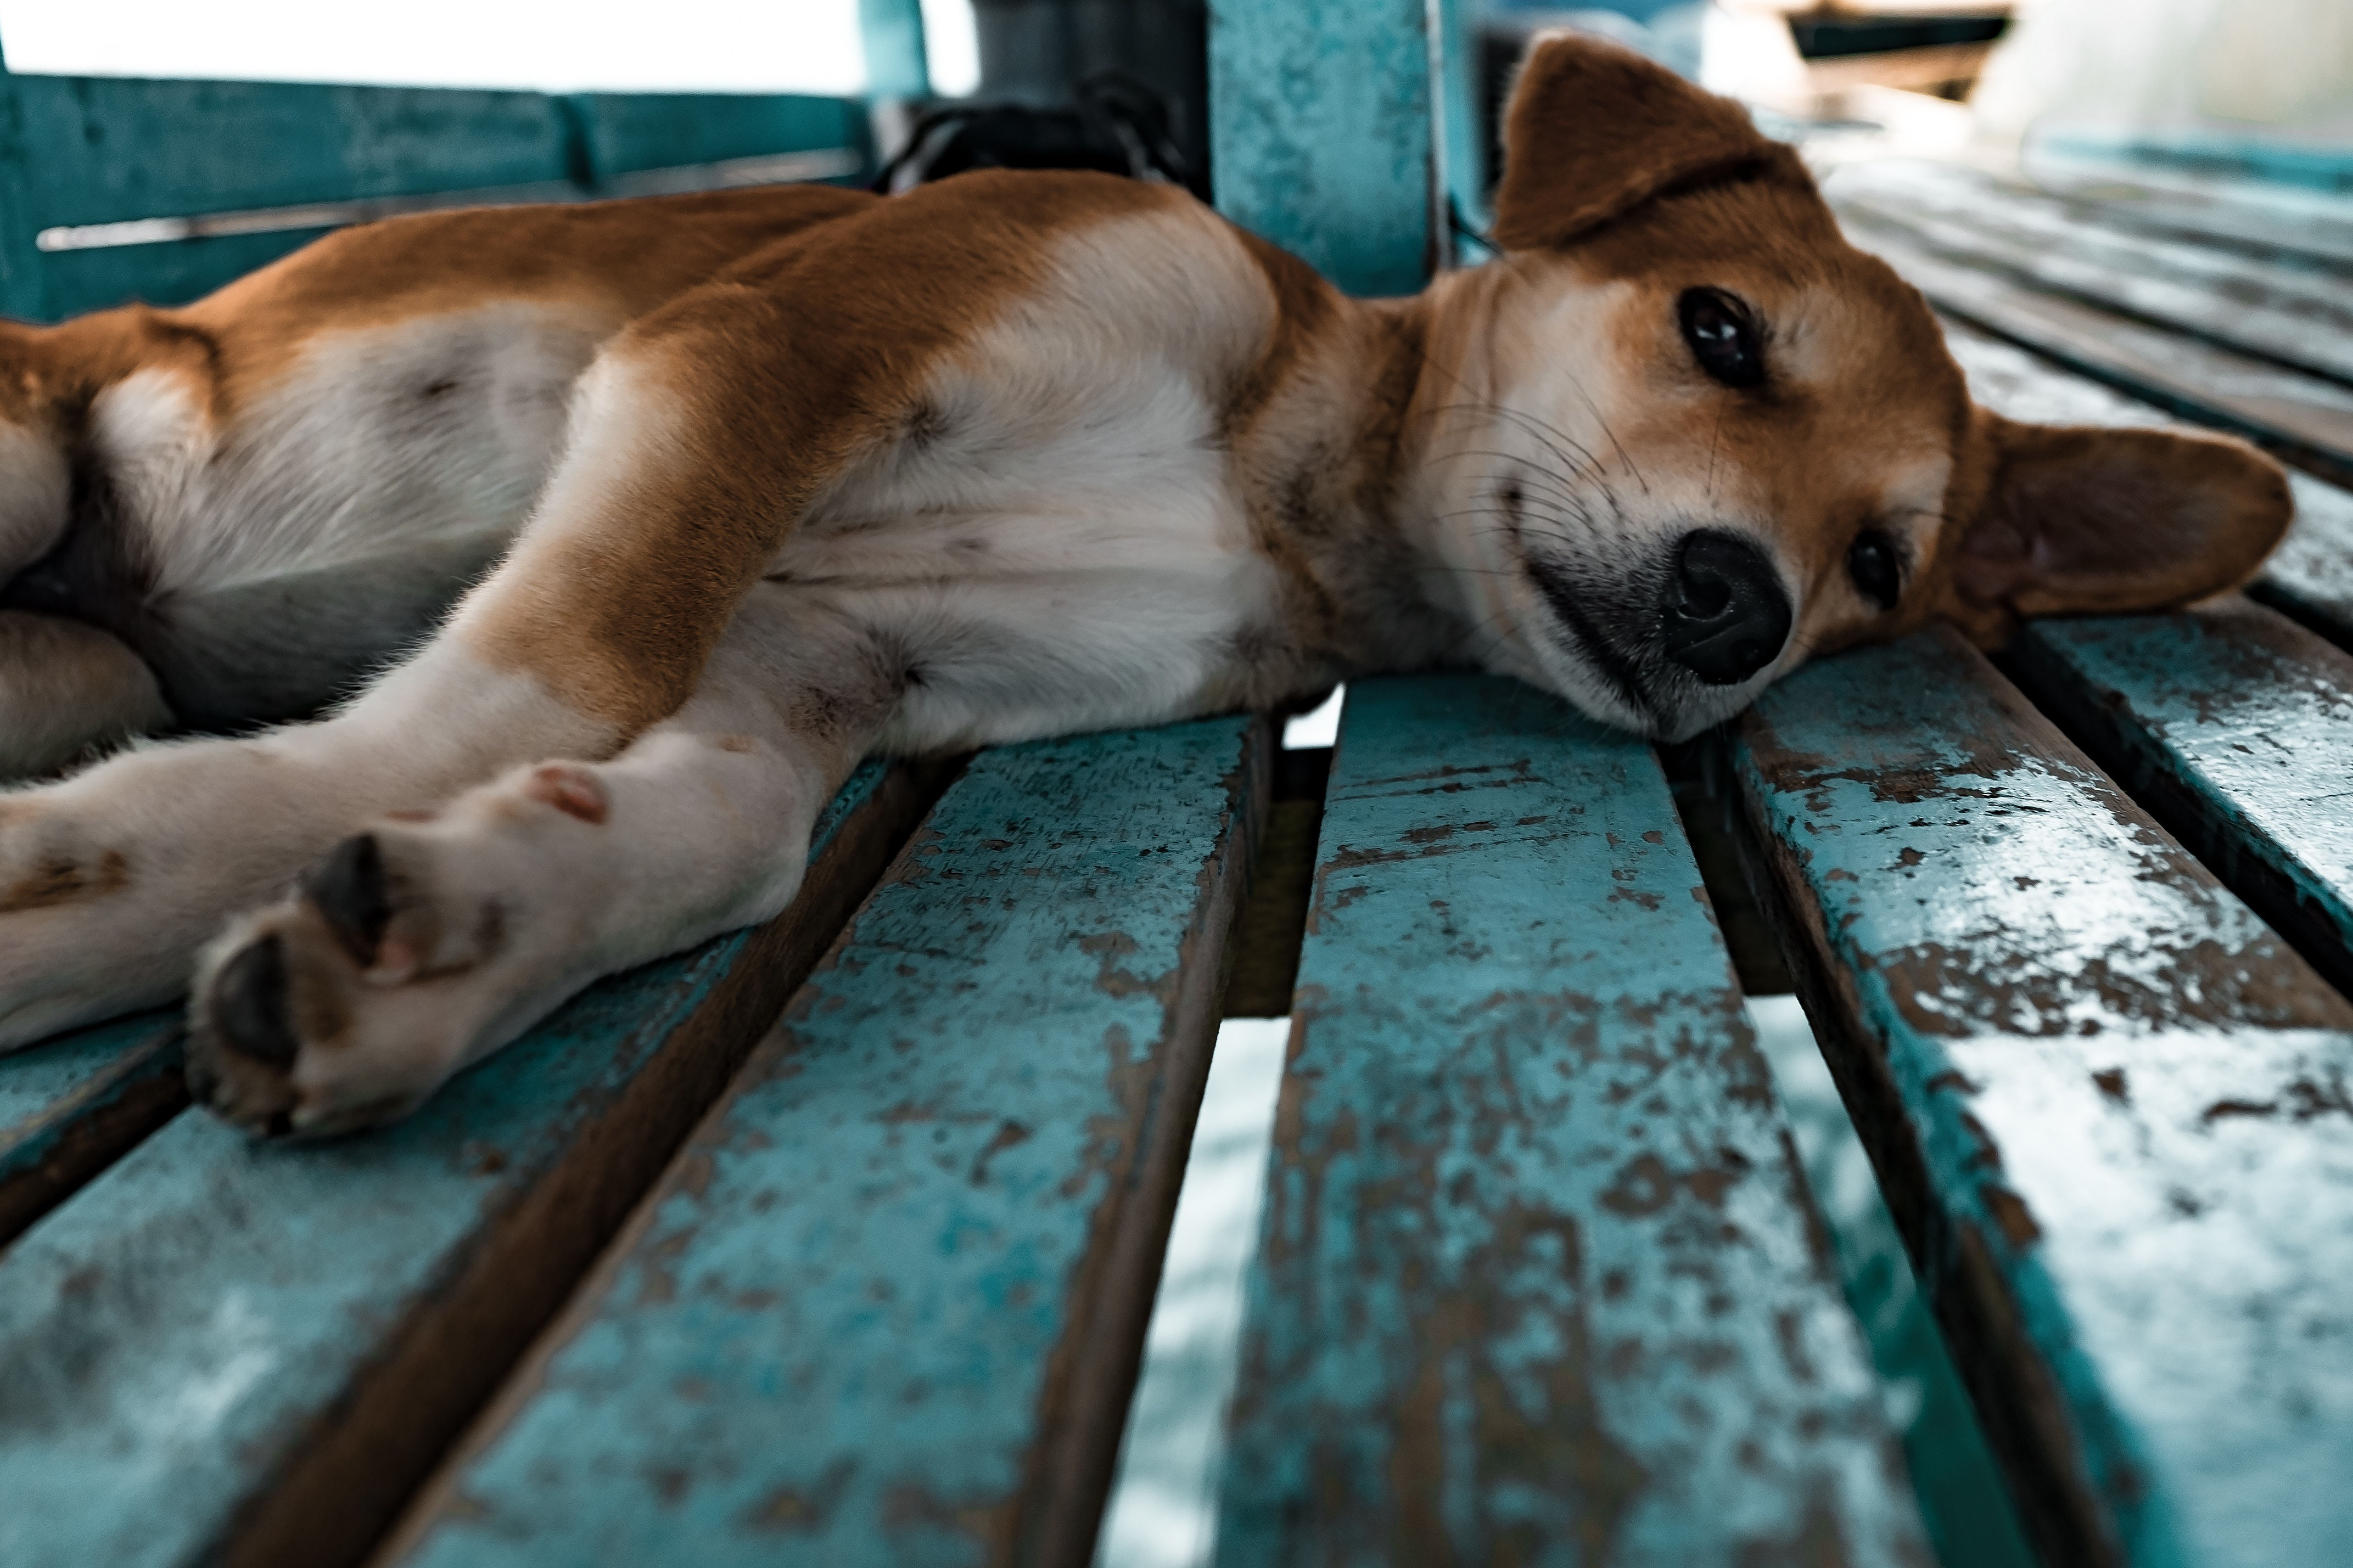 86621 download wallpaper Animals, Shiba Inu, Siba Inu, Dog, Puppy, Lies screensavers and pictures for free